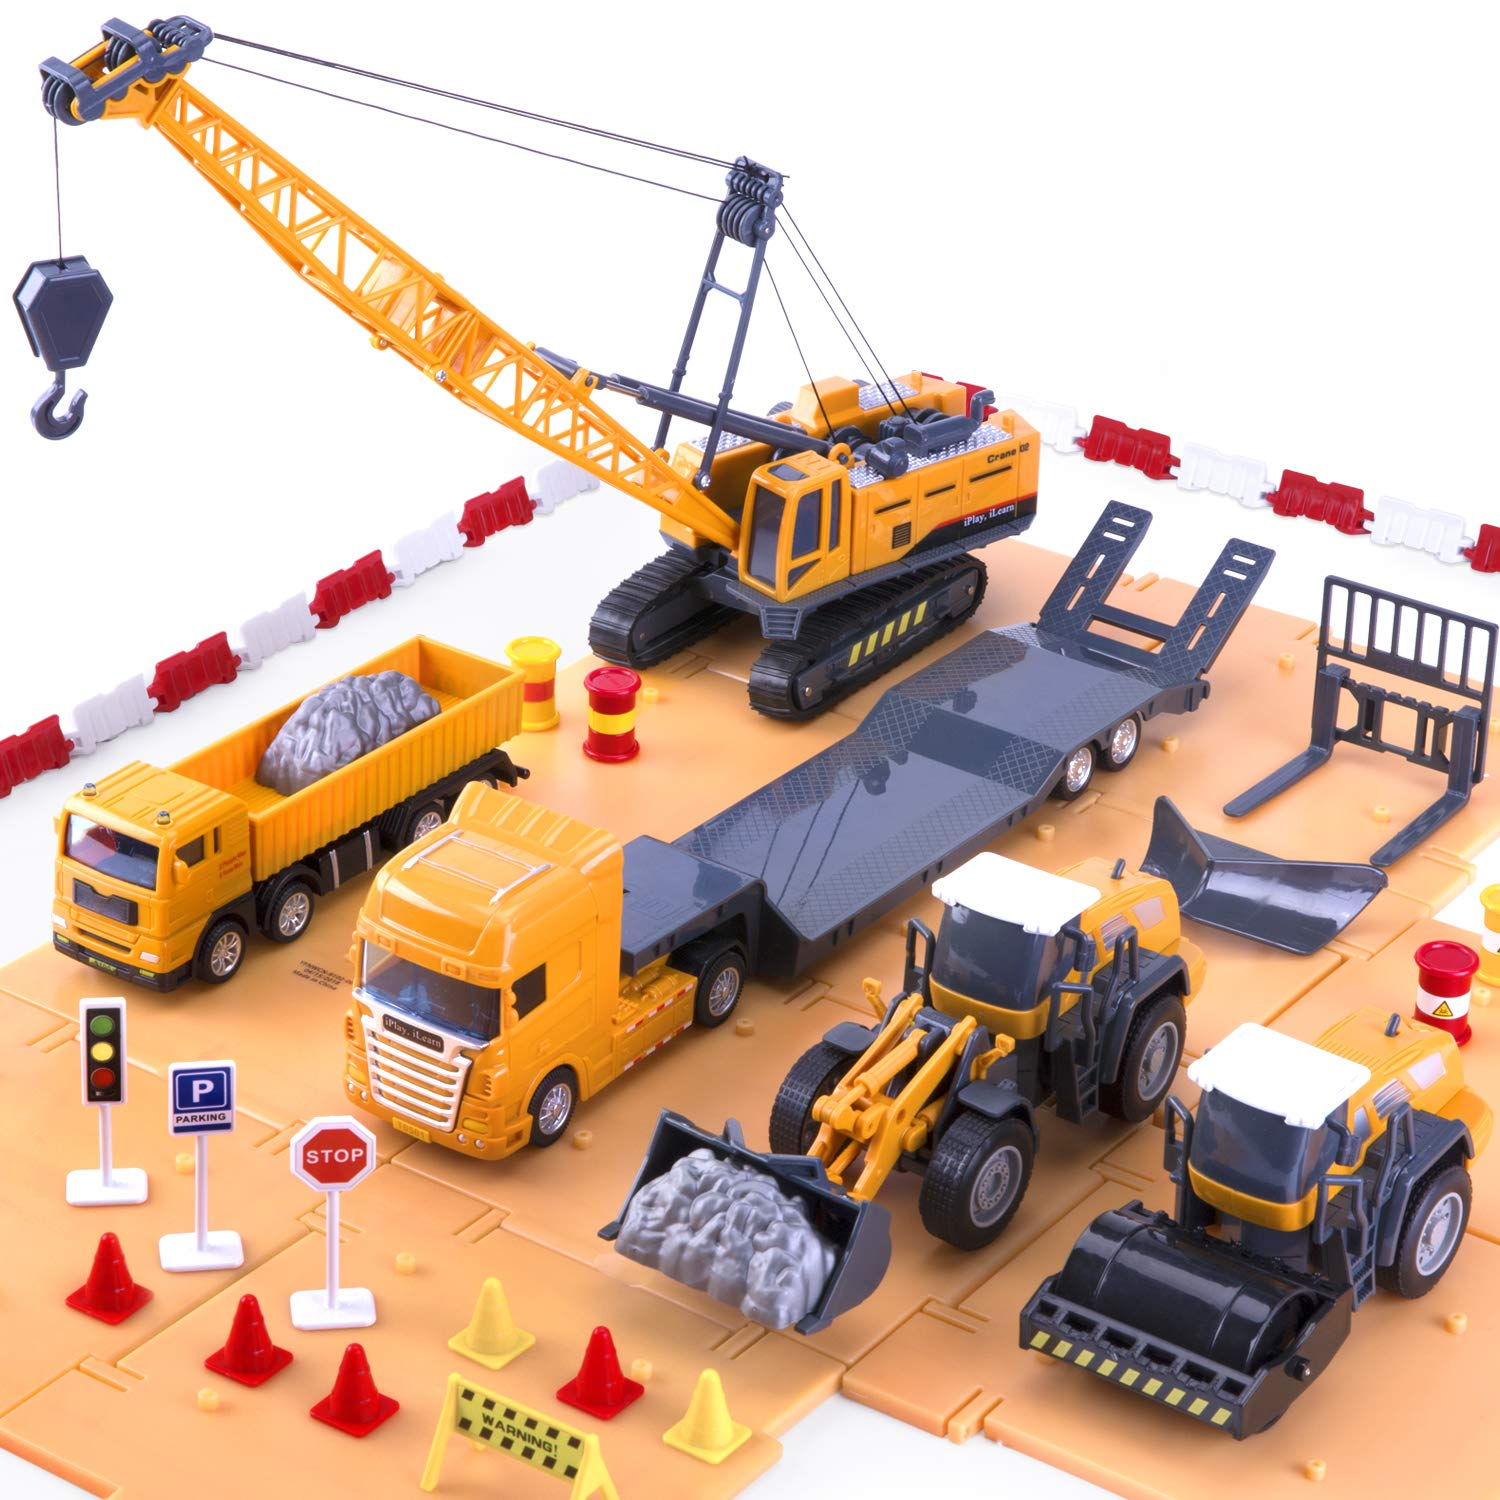 I Hope This Crane Is Just Hiding Other >> Iplay Ilearn Construction Vehicle Play Set Crane Trucks Bulldozer Trailer Toys For Kids Boys